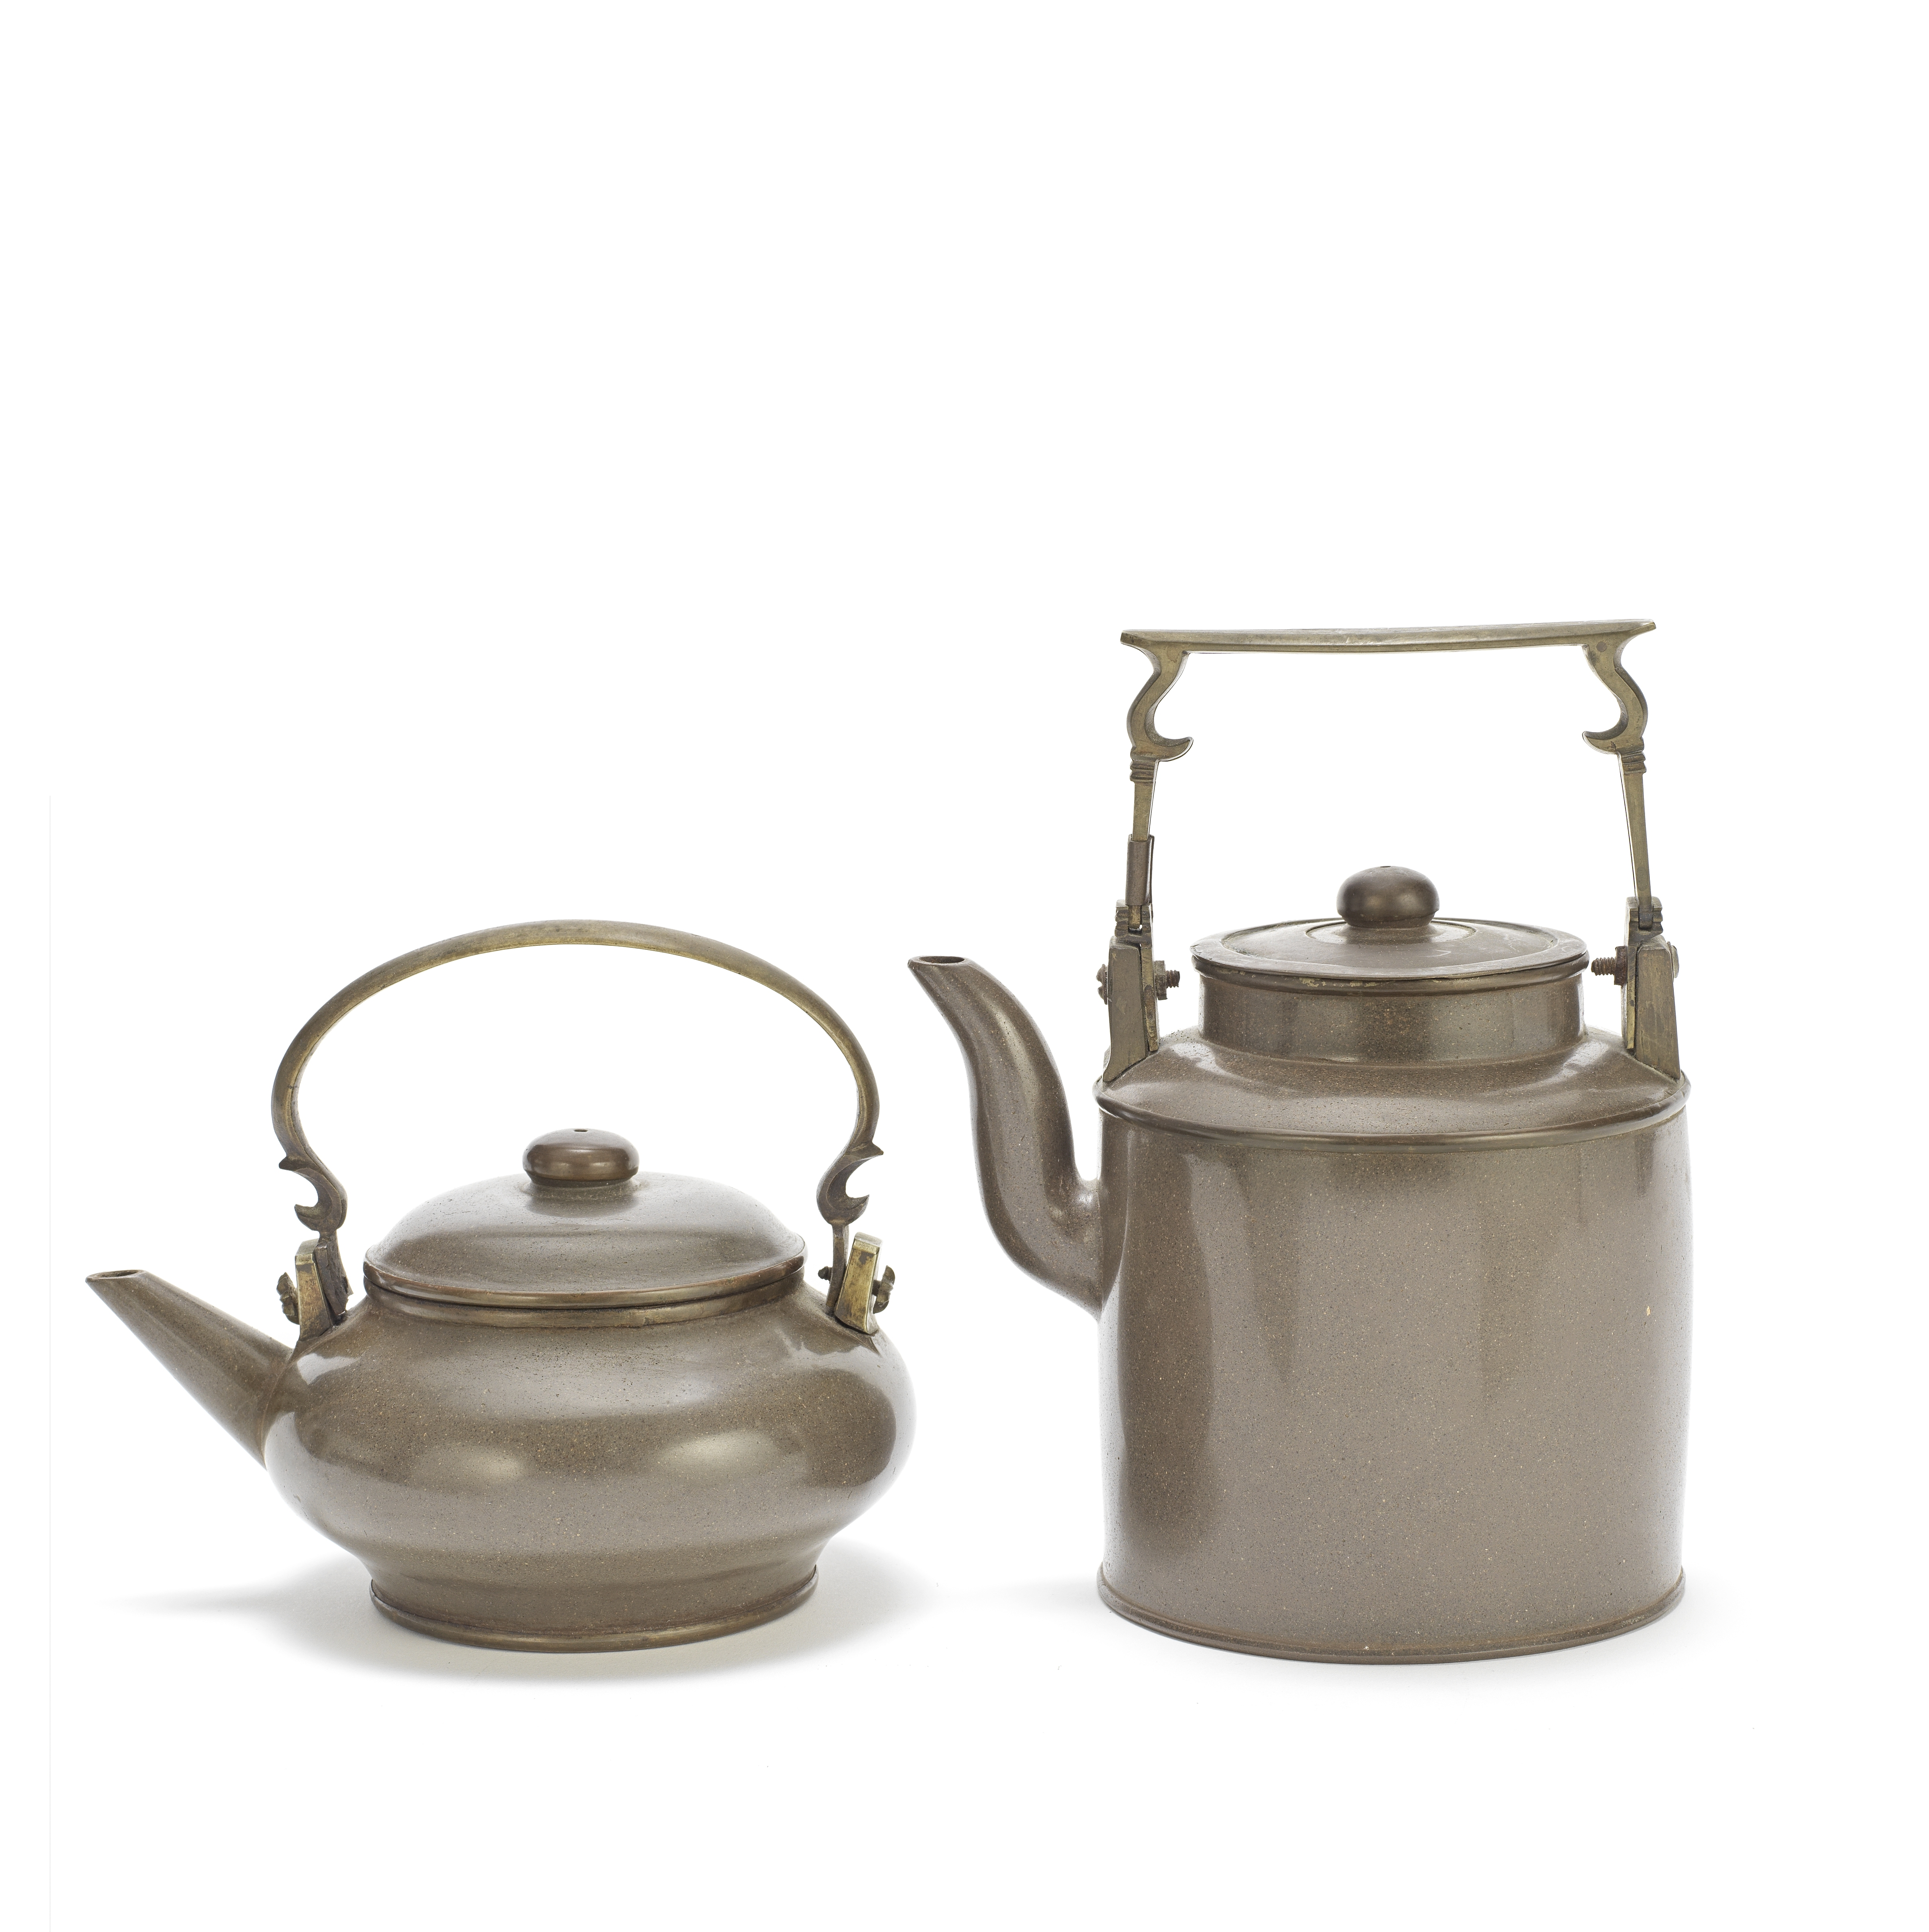 TWO 'THAI MARKET' YIXING TEAPOTS AND COVERS 19th century (2)